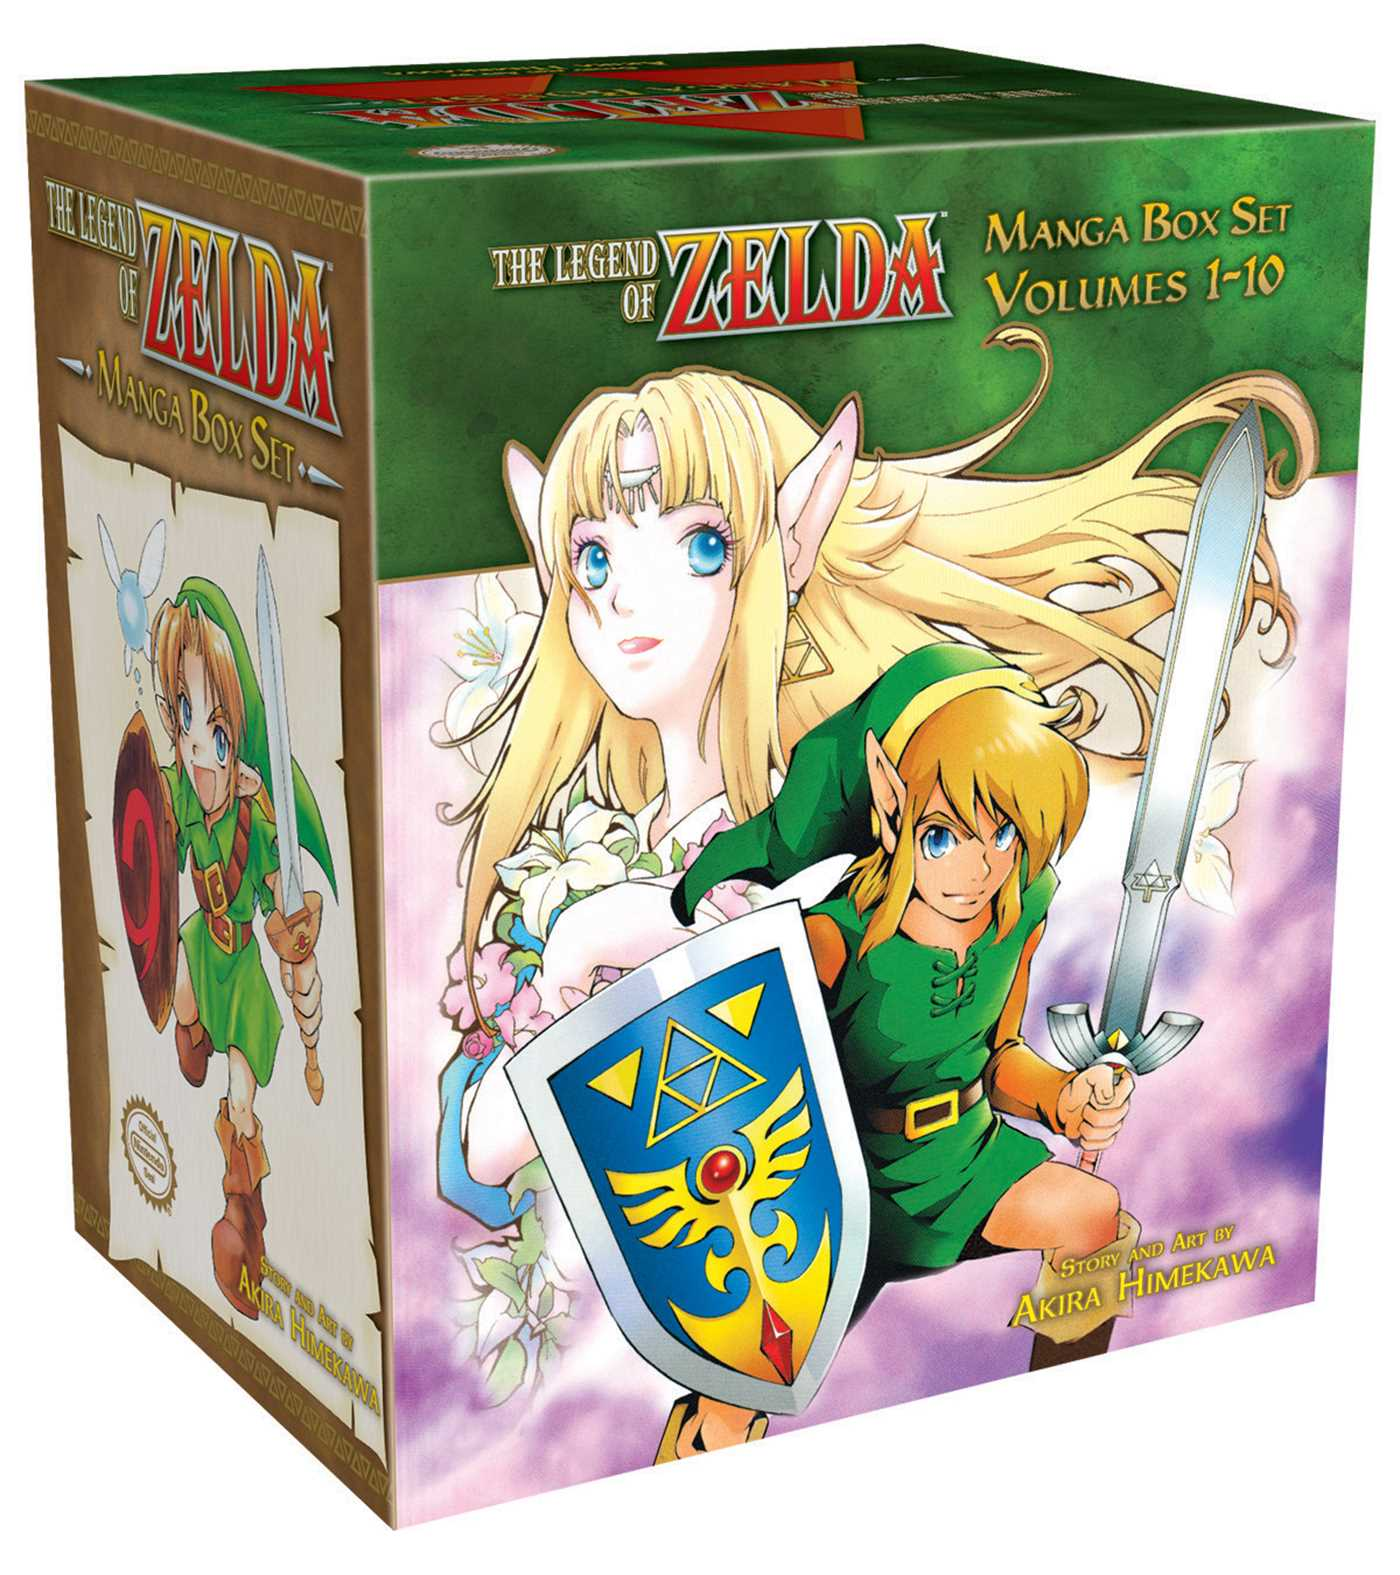 The-legend-of-zelda-box-set-9781421542423_hr